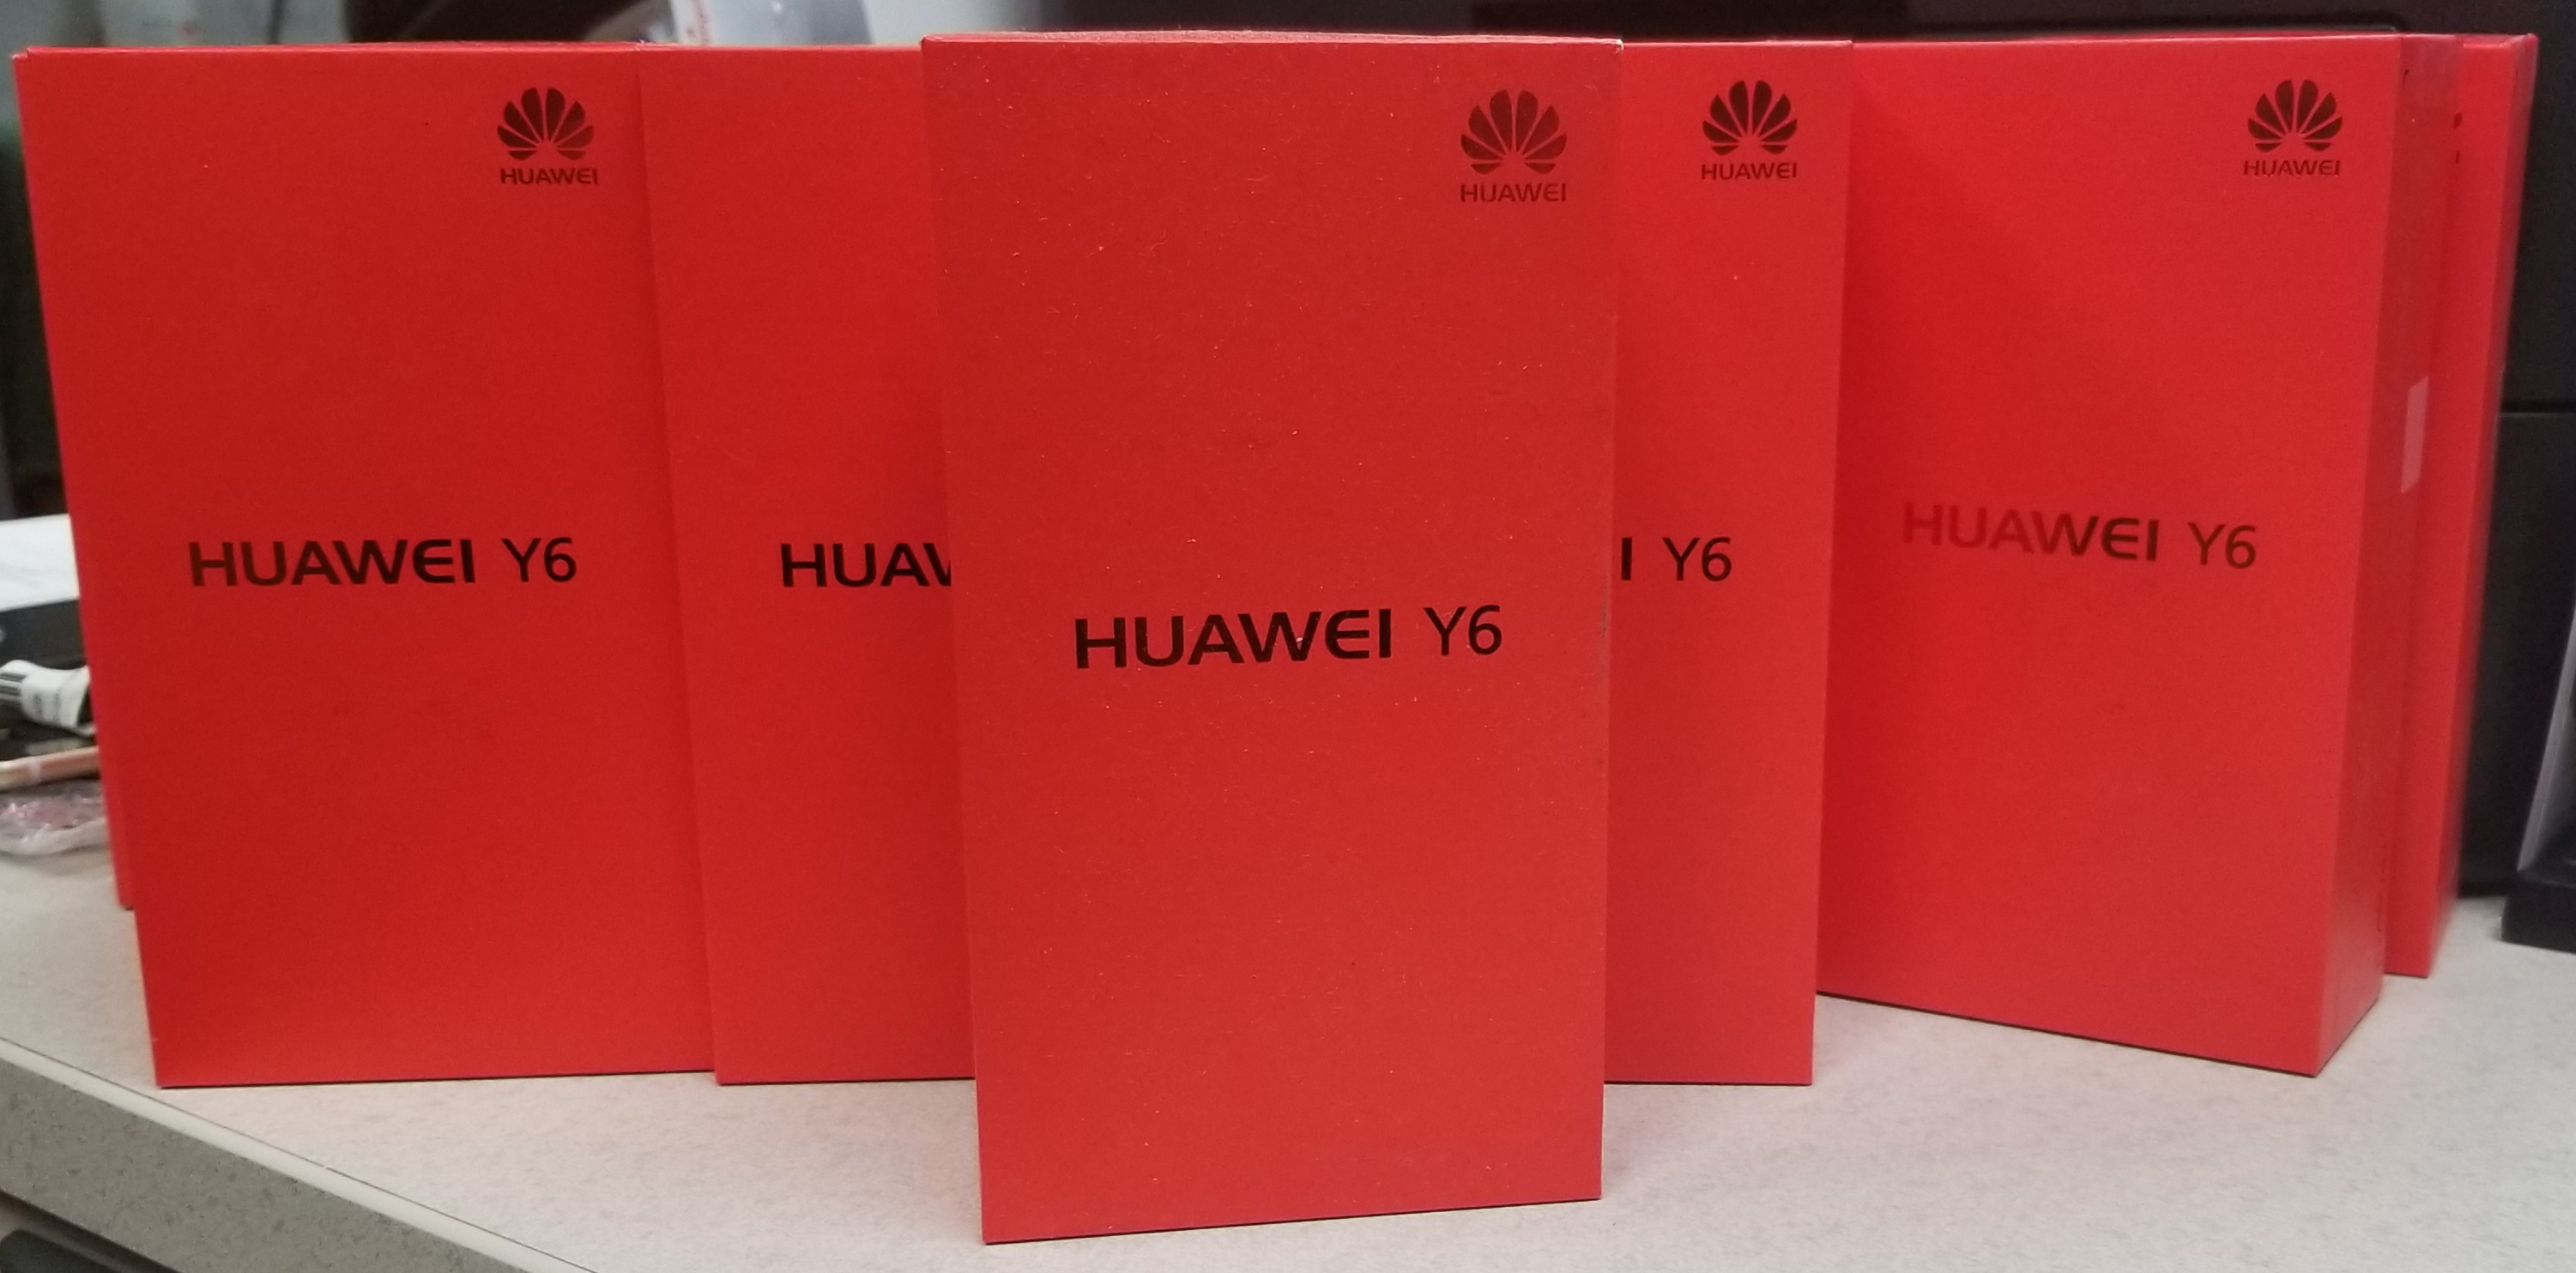 HUAWEI Y6 2015 - NEW - UNLOCKED -$53